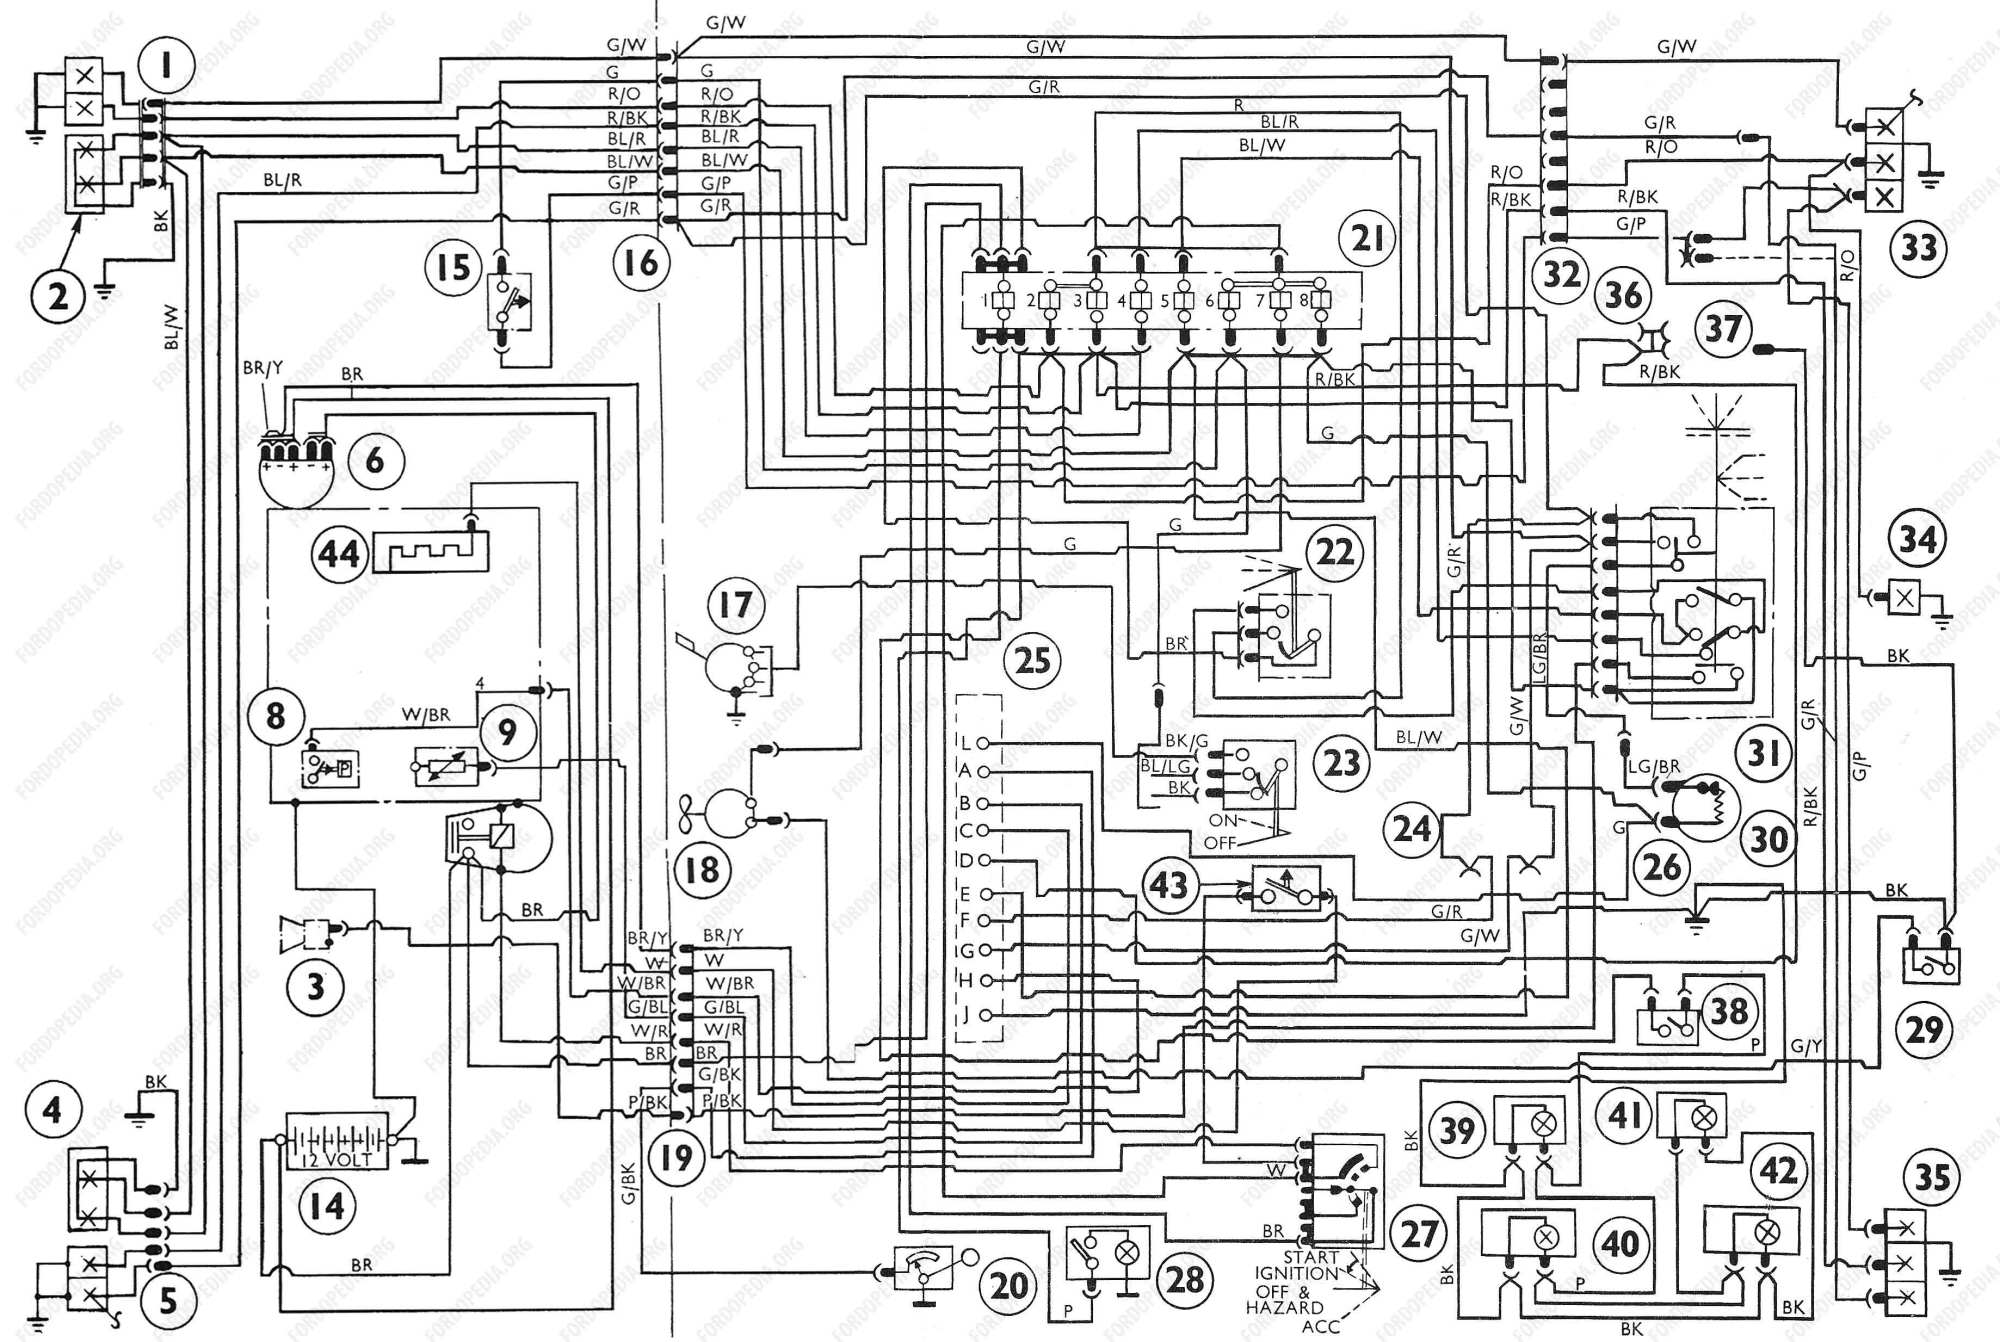 hight resolution of ford transit connect battery ford circuit diagrams wiring diagram ford transit wiring diagram  [ 2000 x 1342 Pixel ]